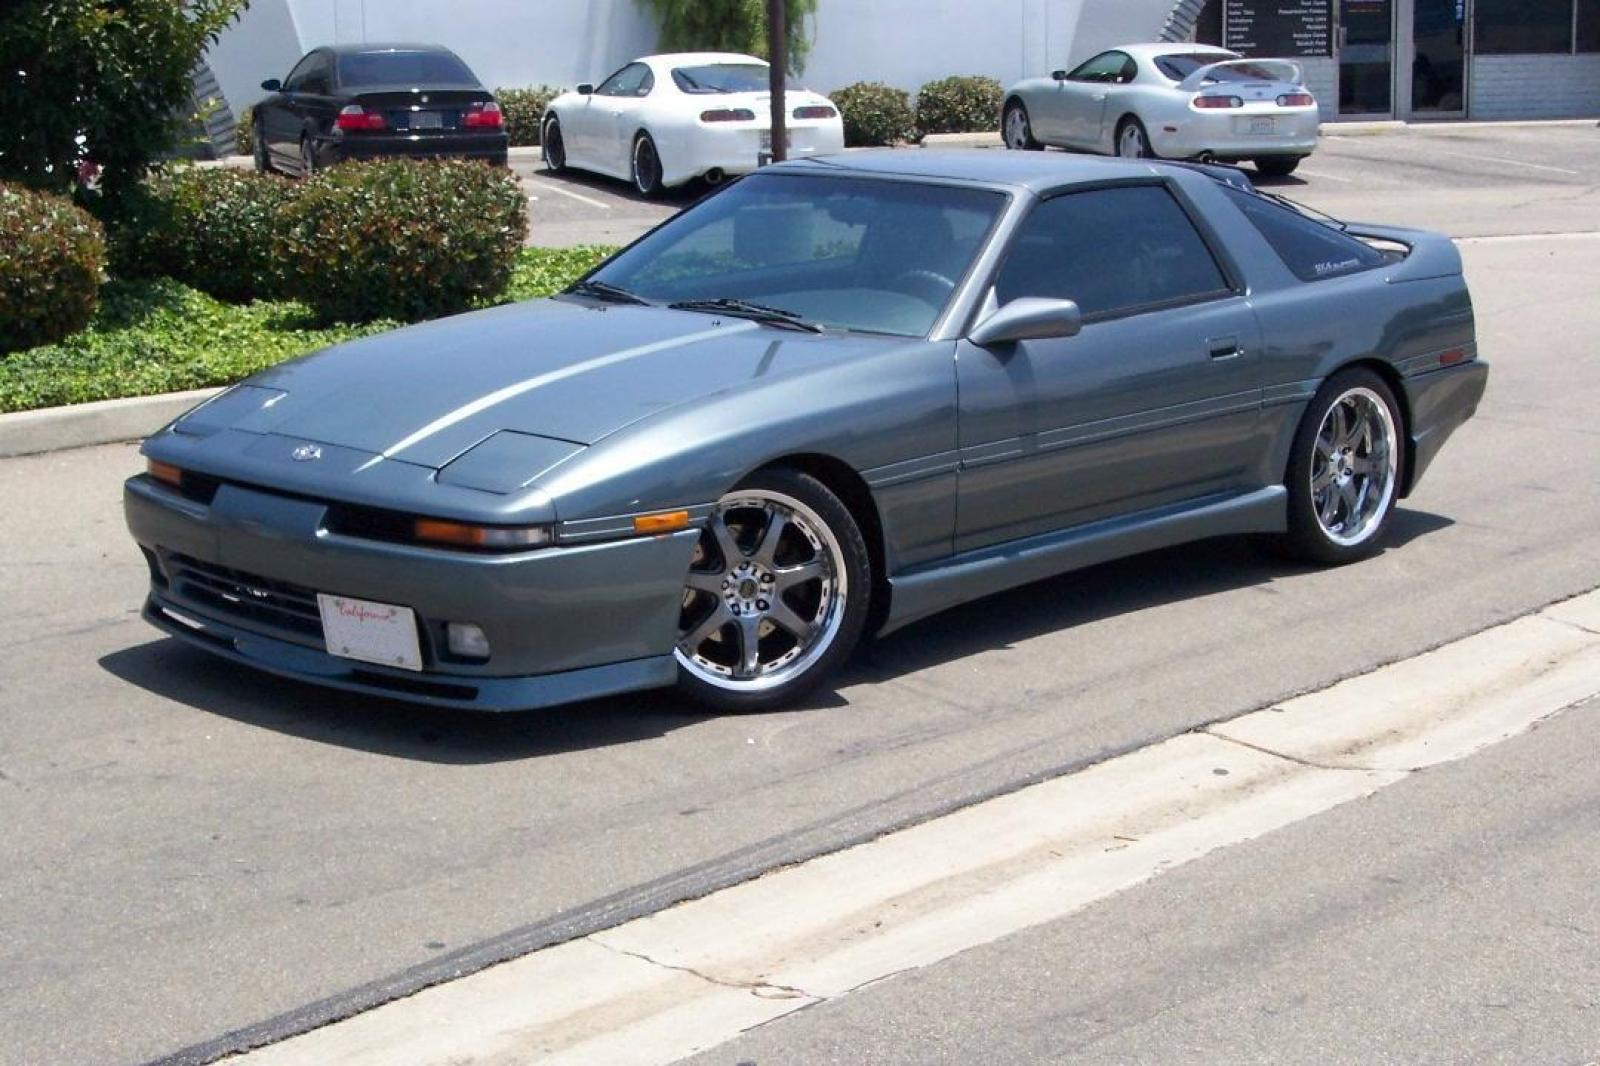 1992 toyota supra information and photos zombiedrive. Black Bedroom Furniture Sets. Home Design Ideas